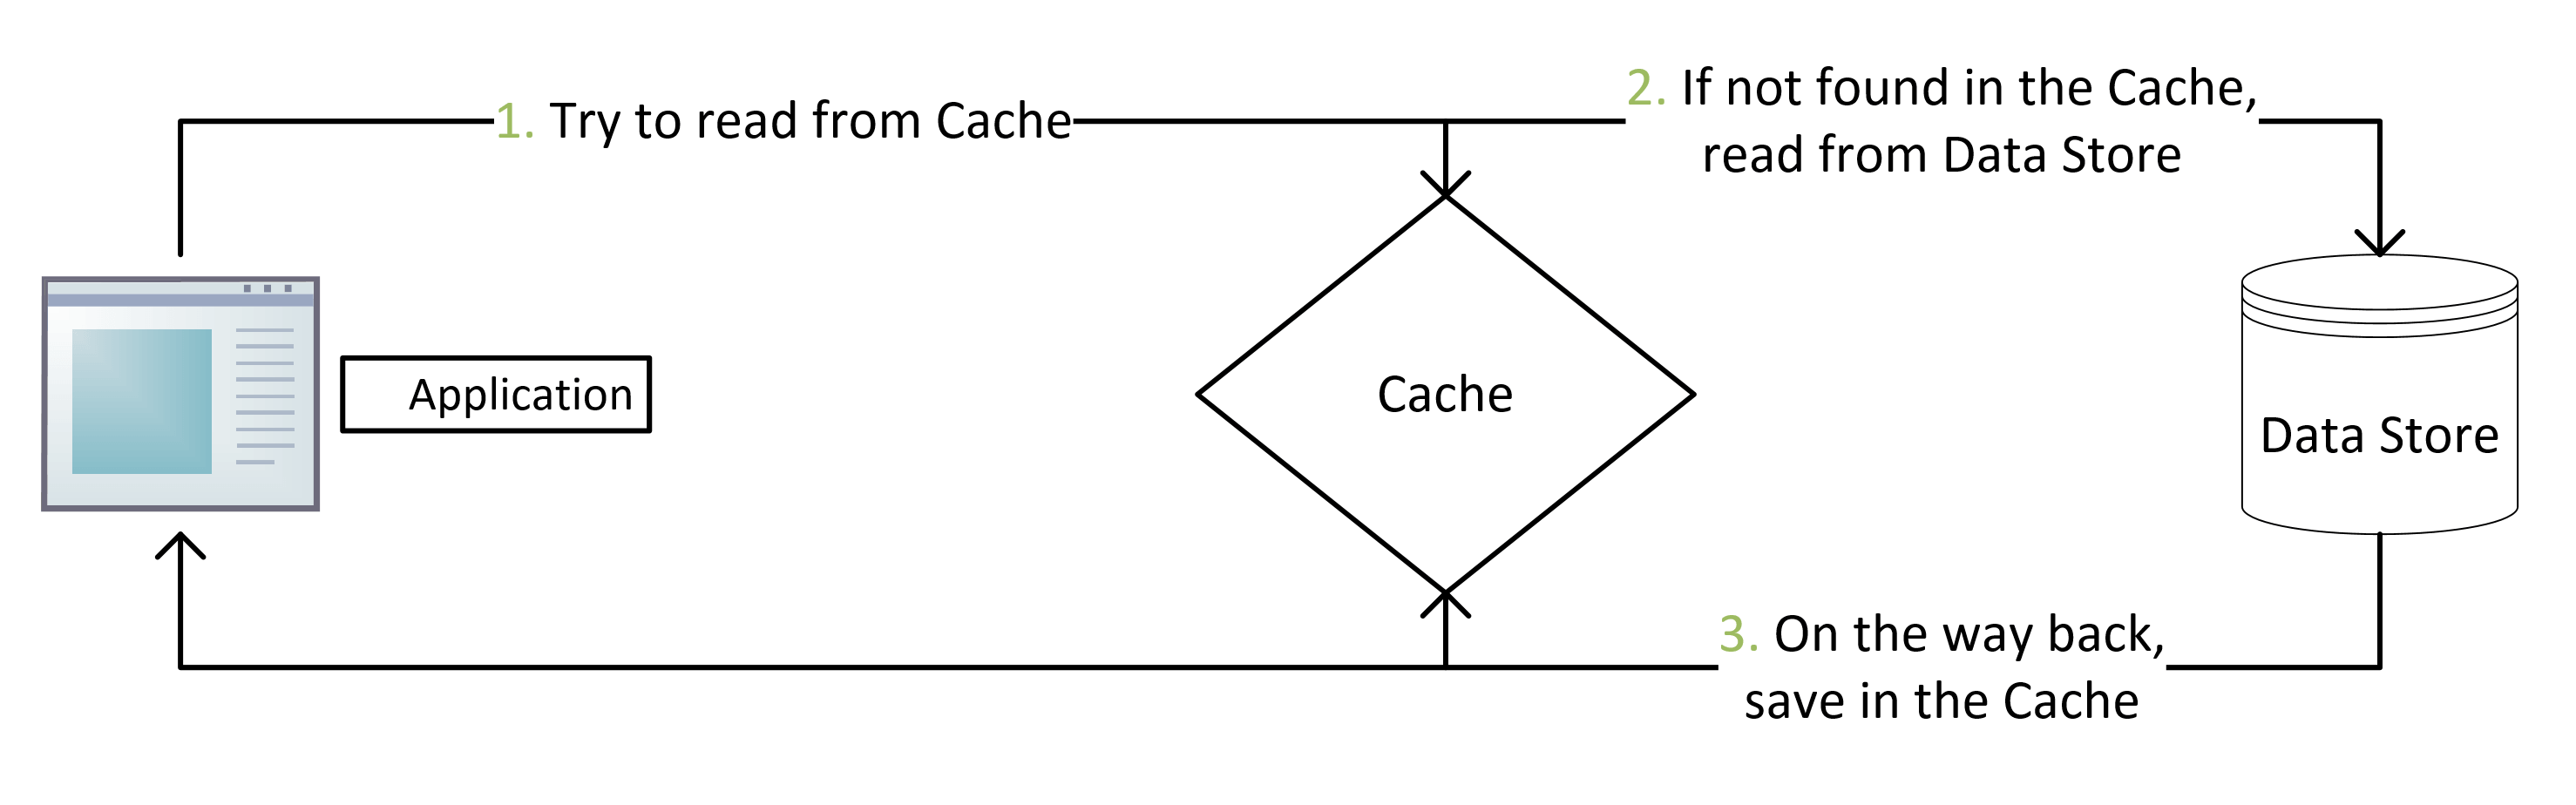 cache flow diagram